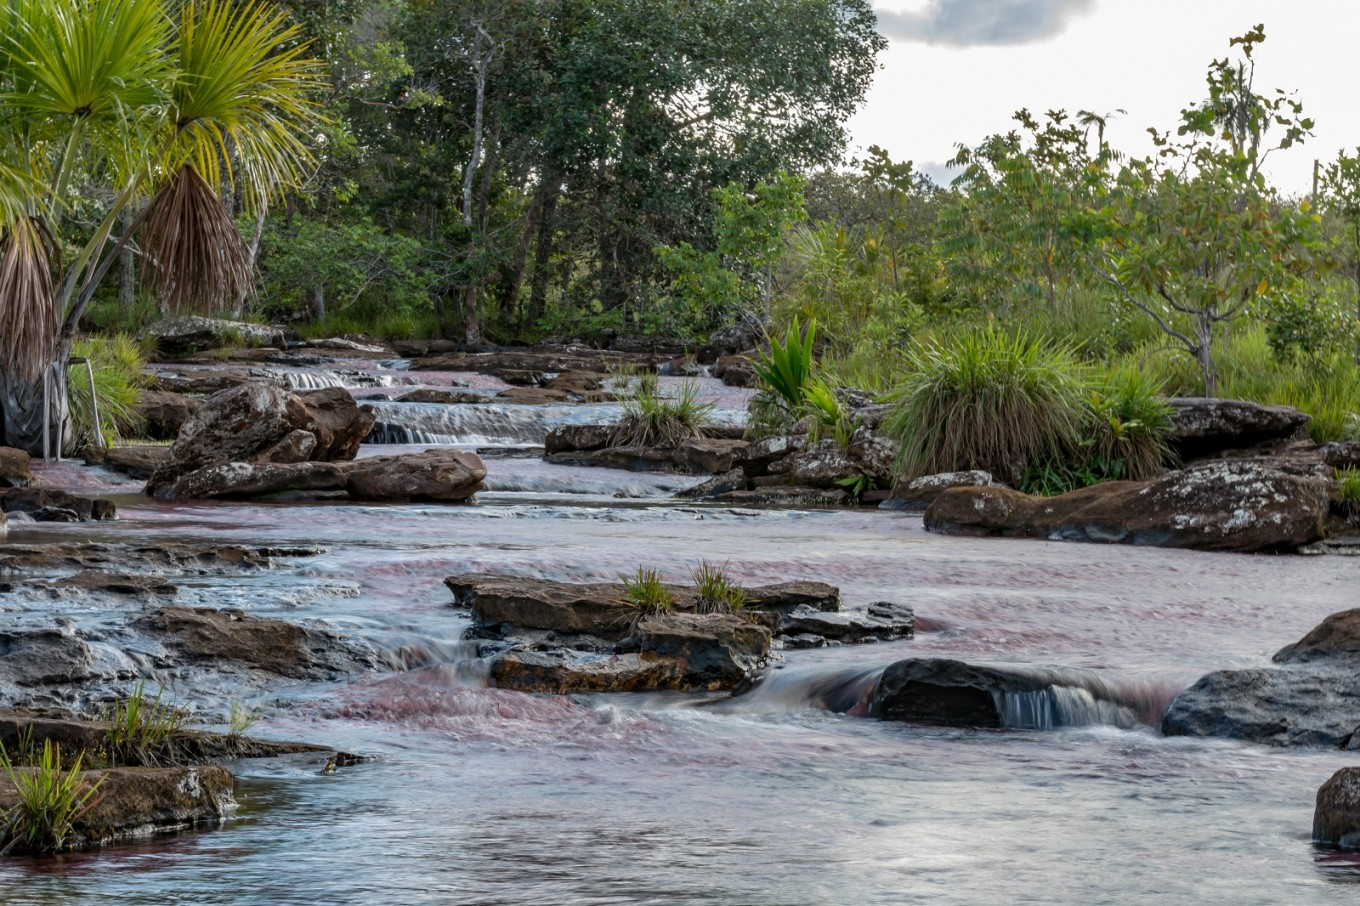 UNESCO marks Colombian national park for conservation